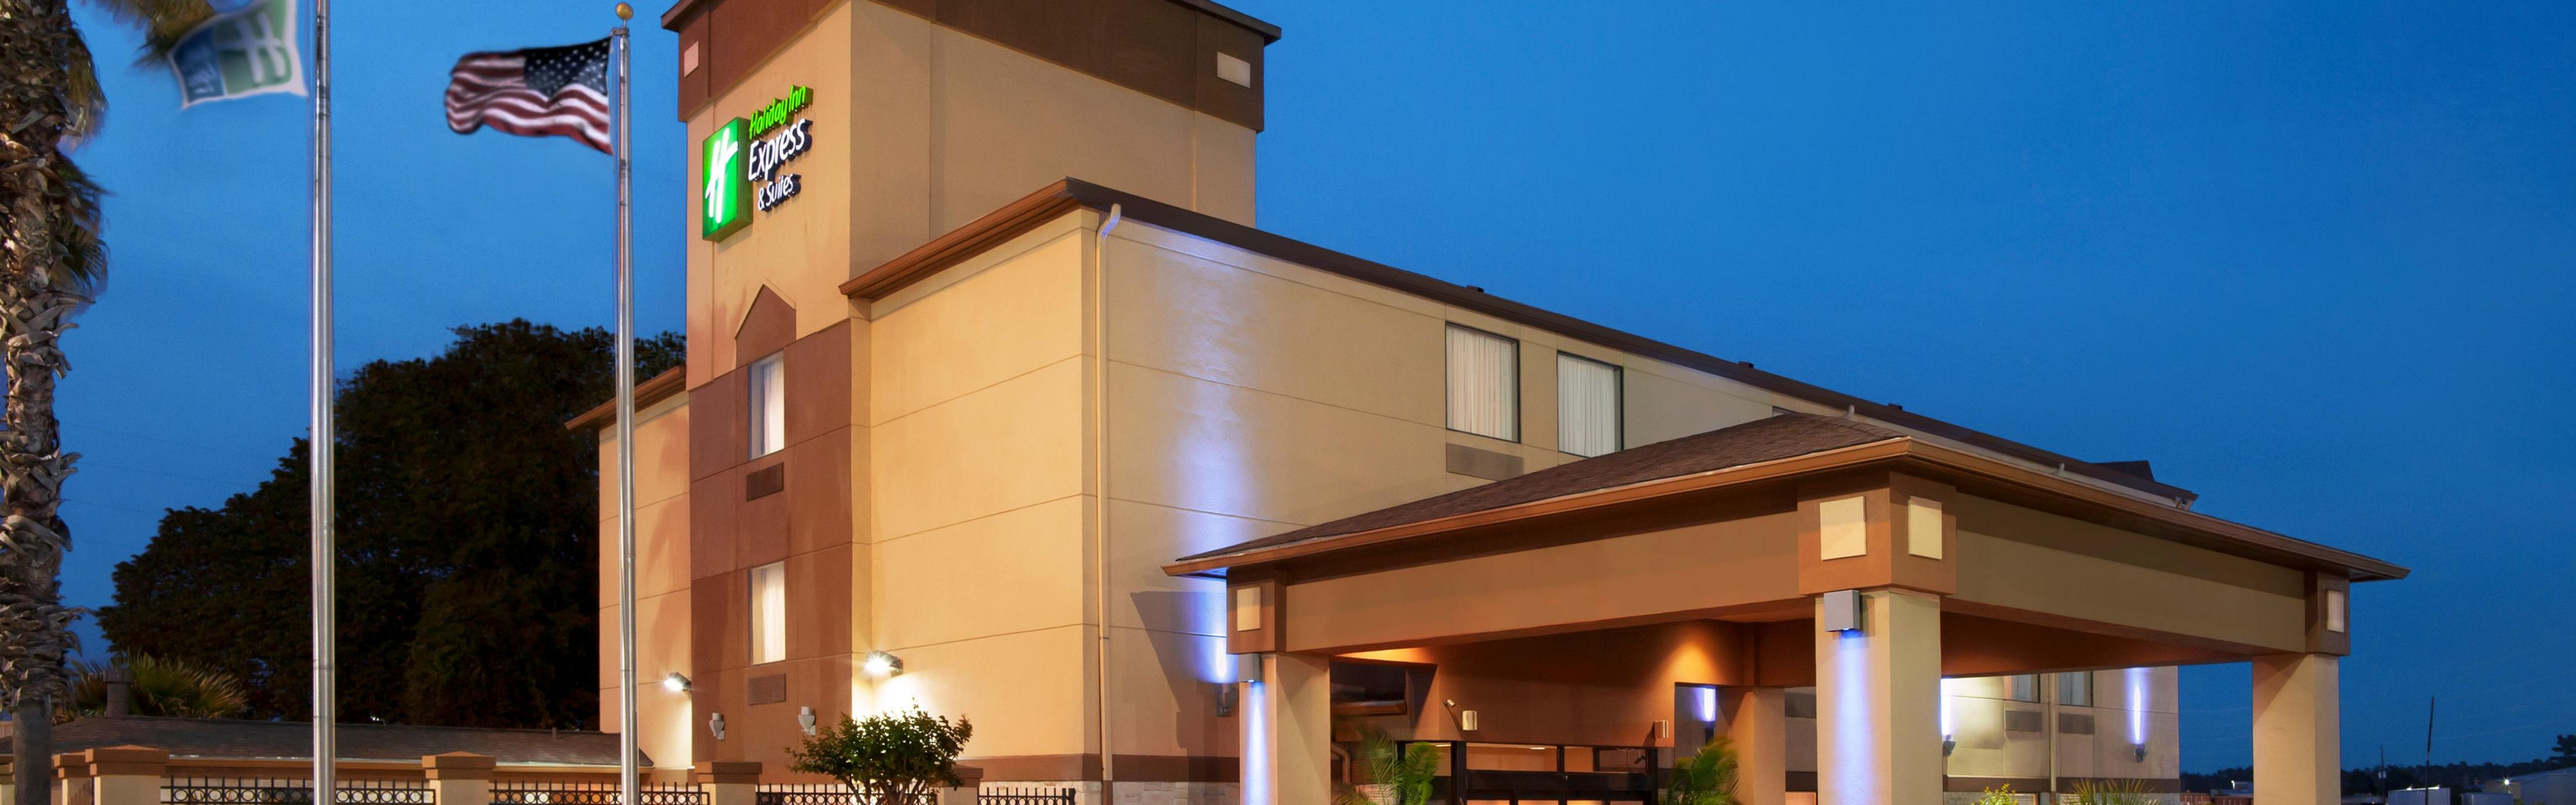 Holiday Inn Express & Suites Houston North-Spring Area image 0